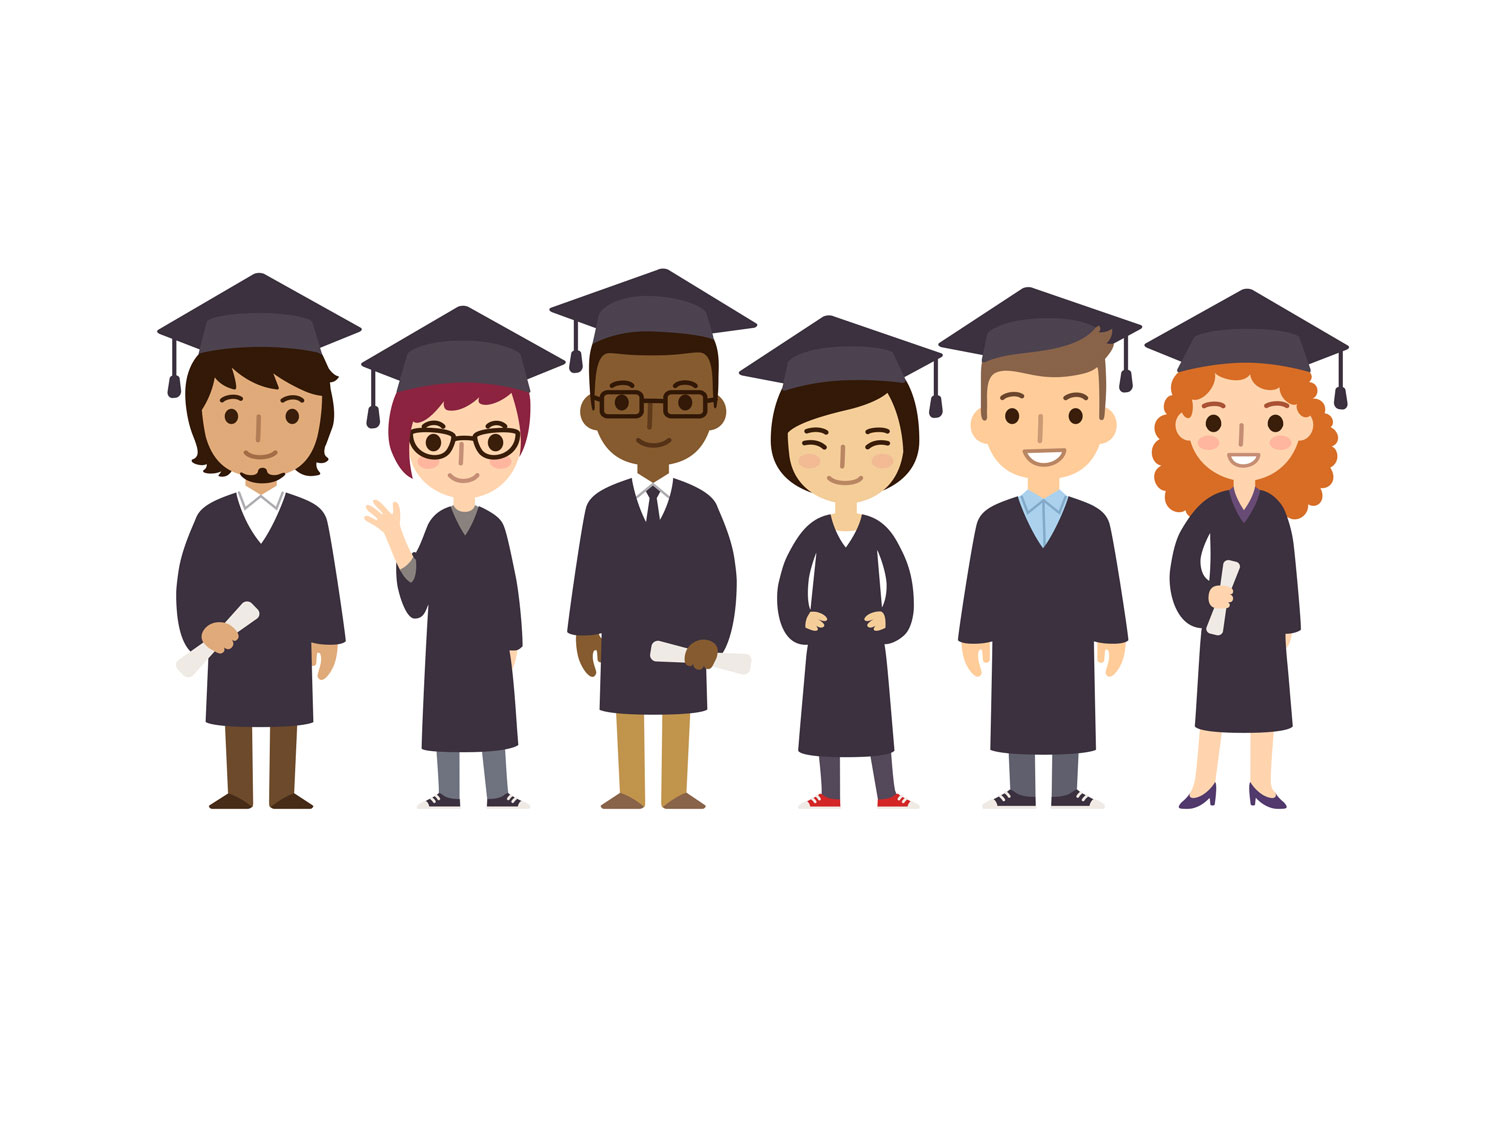 happy college graduates show that education is important for a resume